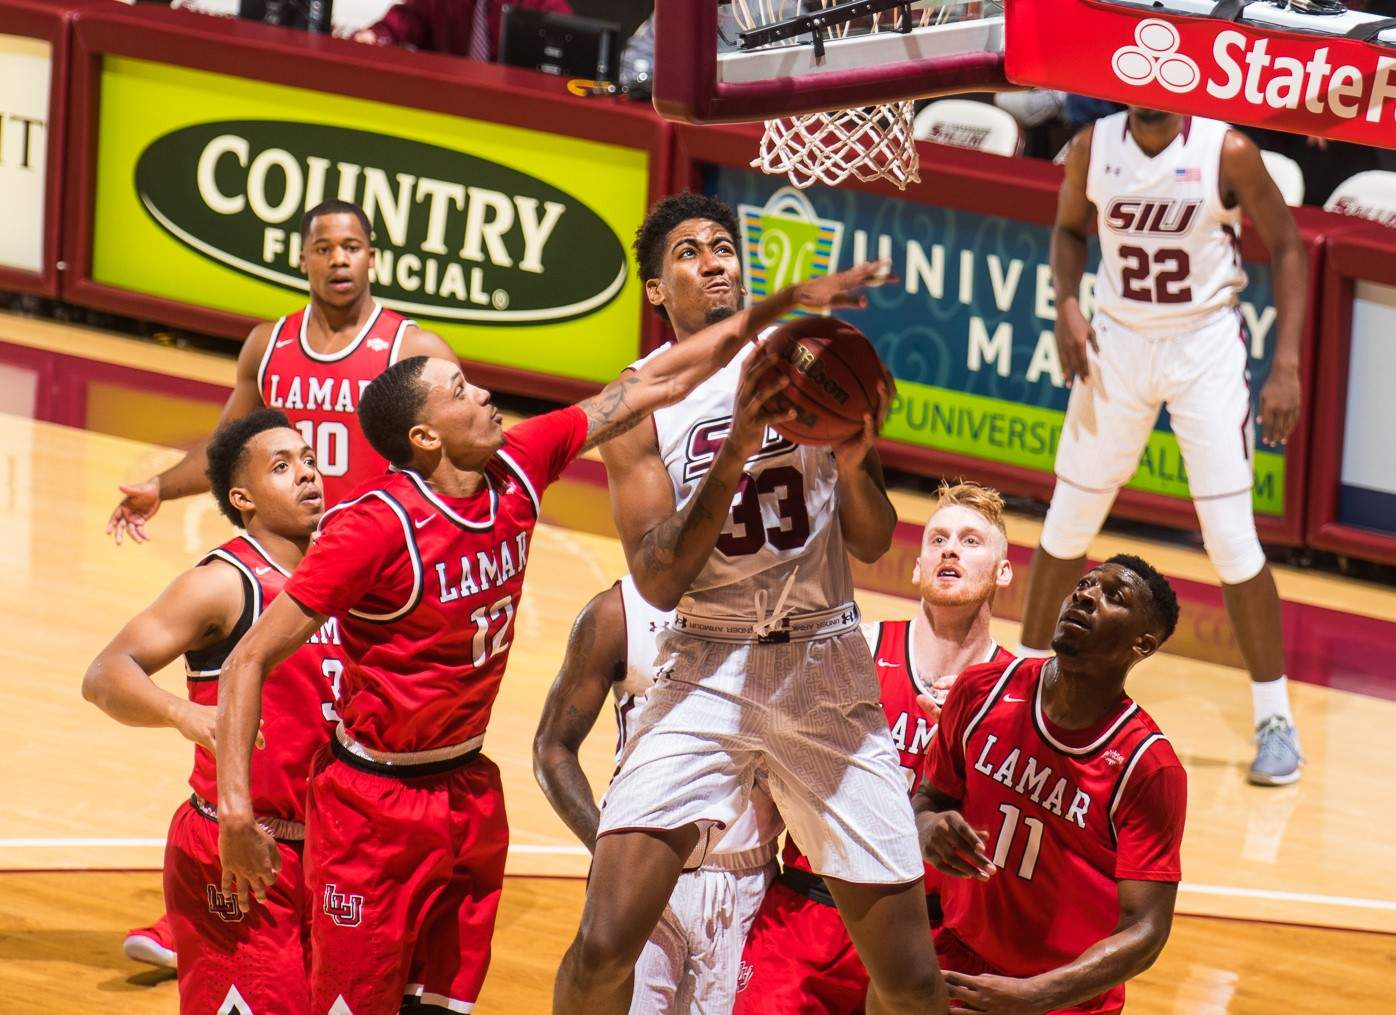 SIU forward Kavion Pippen has been a bright spot for Southern early in the season. He says he's not worried about living up to the family name made famous by NBA legend Scottie Pippen.